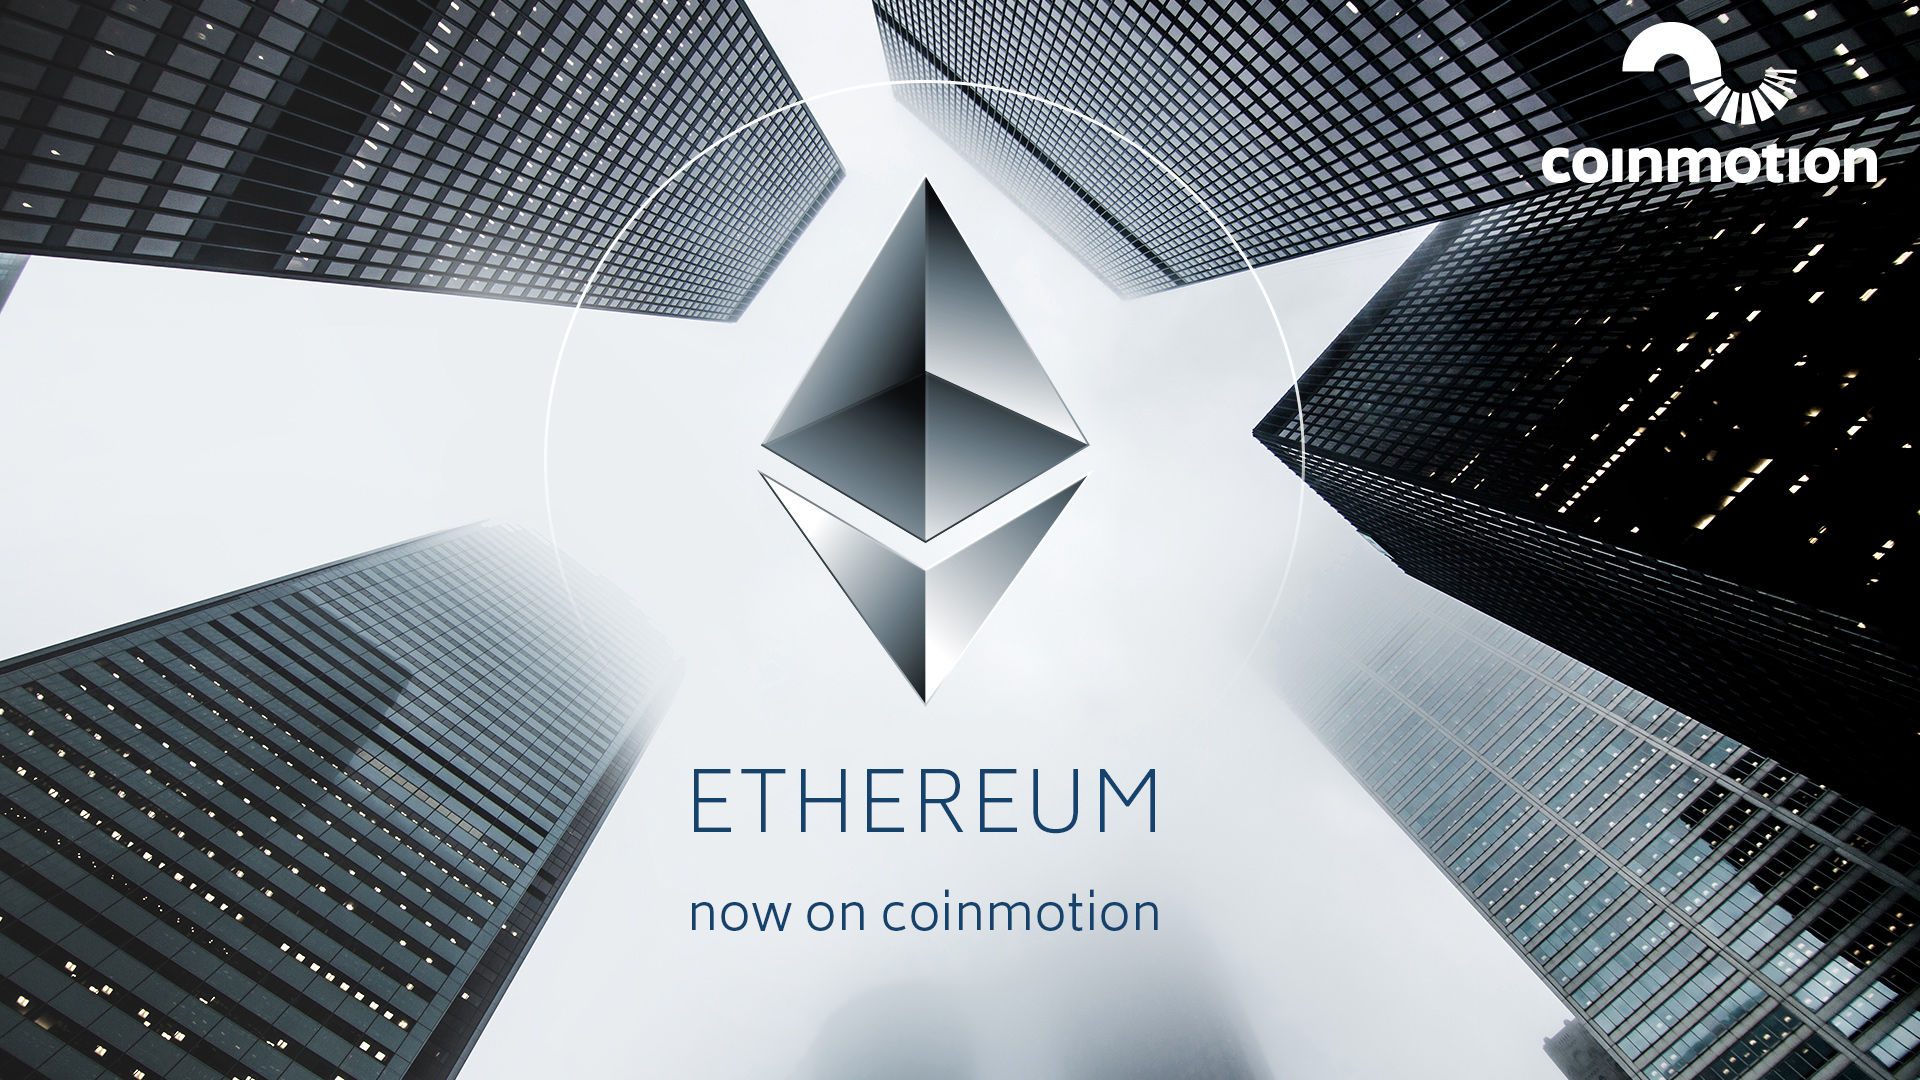 Ethereum Coinmotion